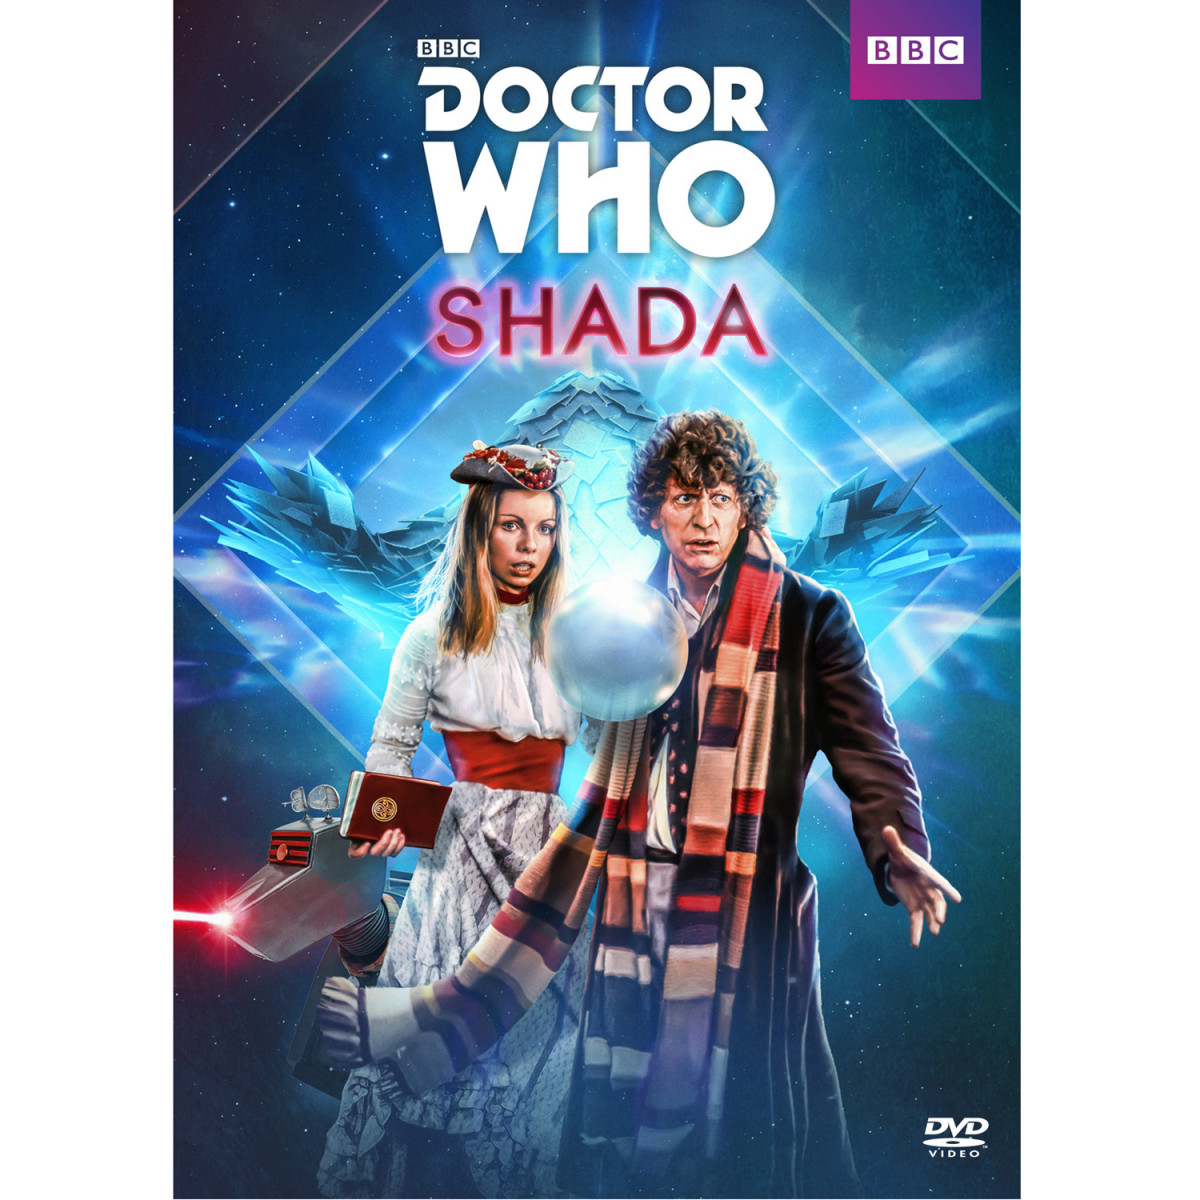 Doctor Who: Shada (2017) BluRay 720p & 1080p